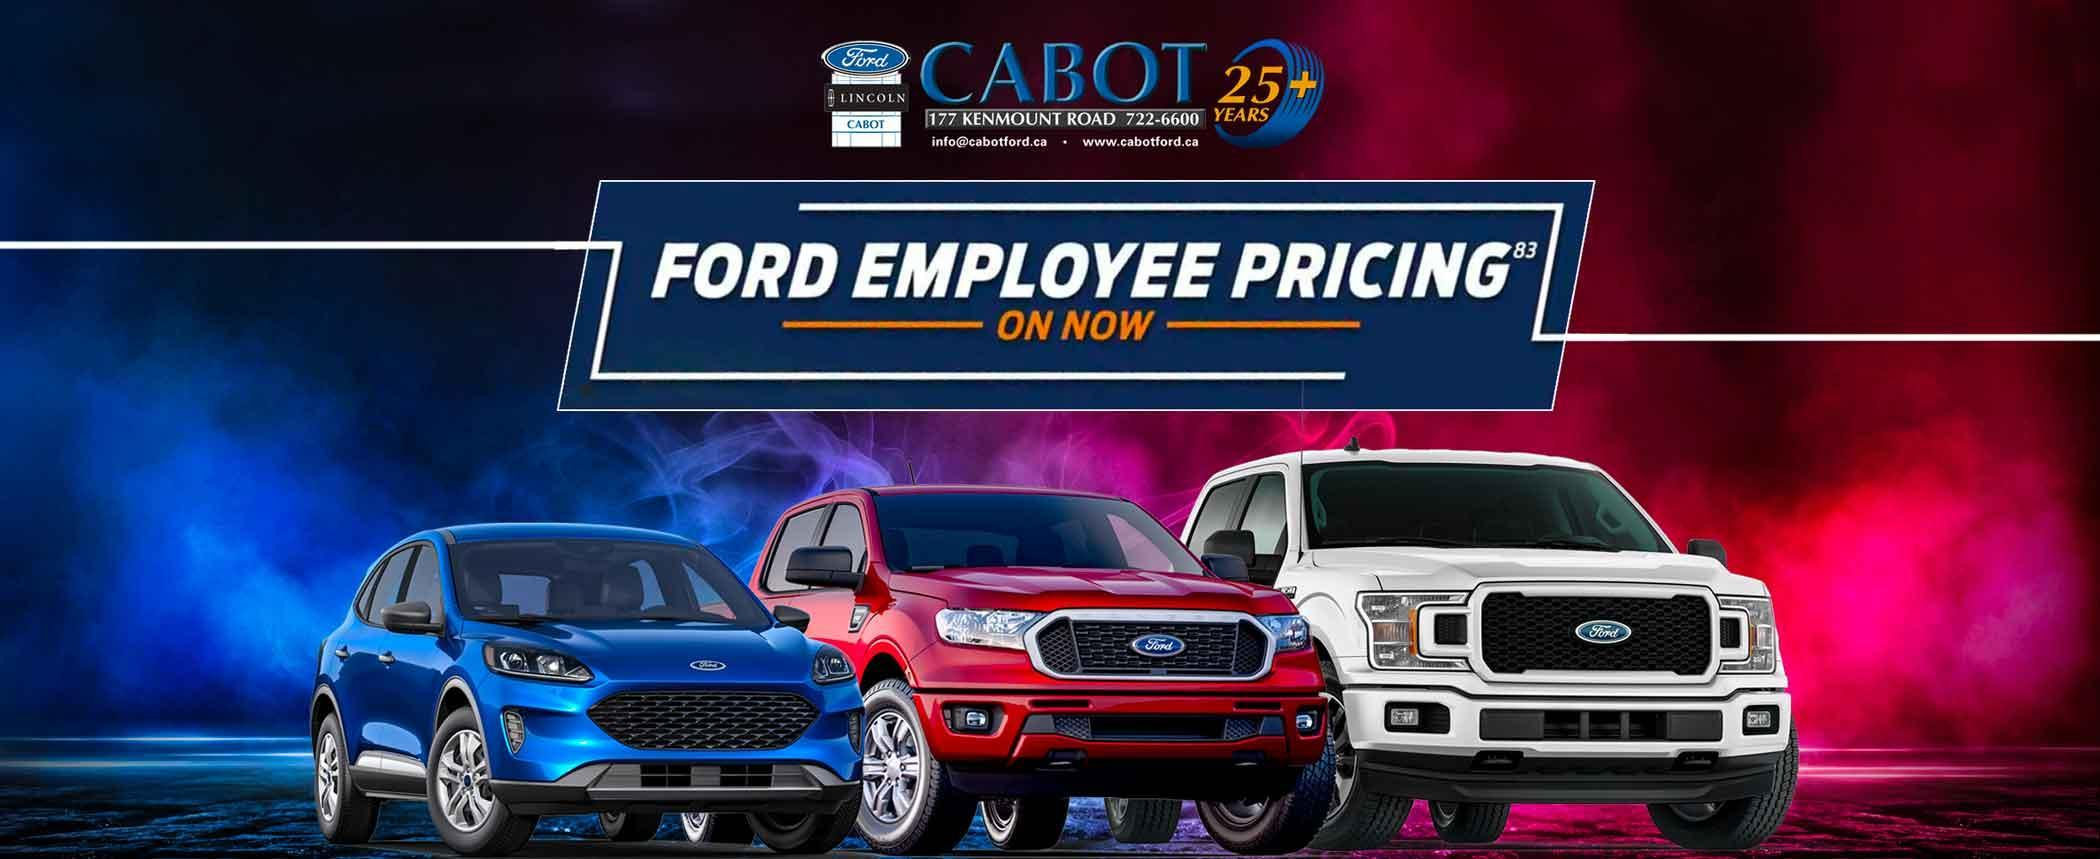 FORD EMPLOYEE PRICING ENDS SOON! For a limited time only, YOU PAY WHAT WE PAY!